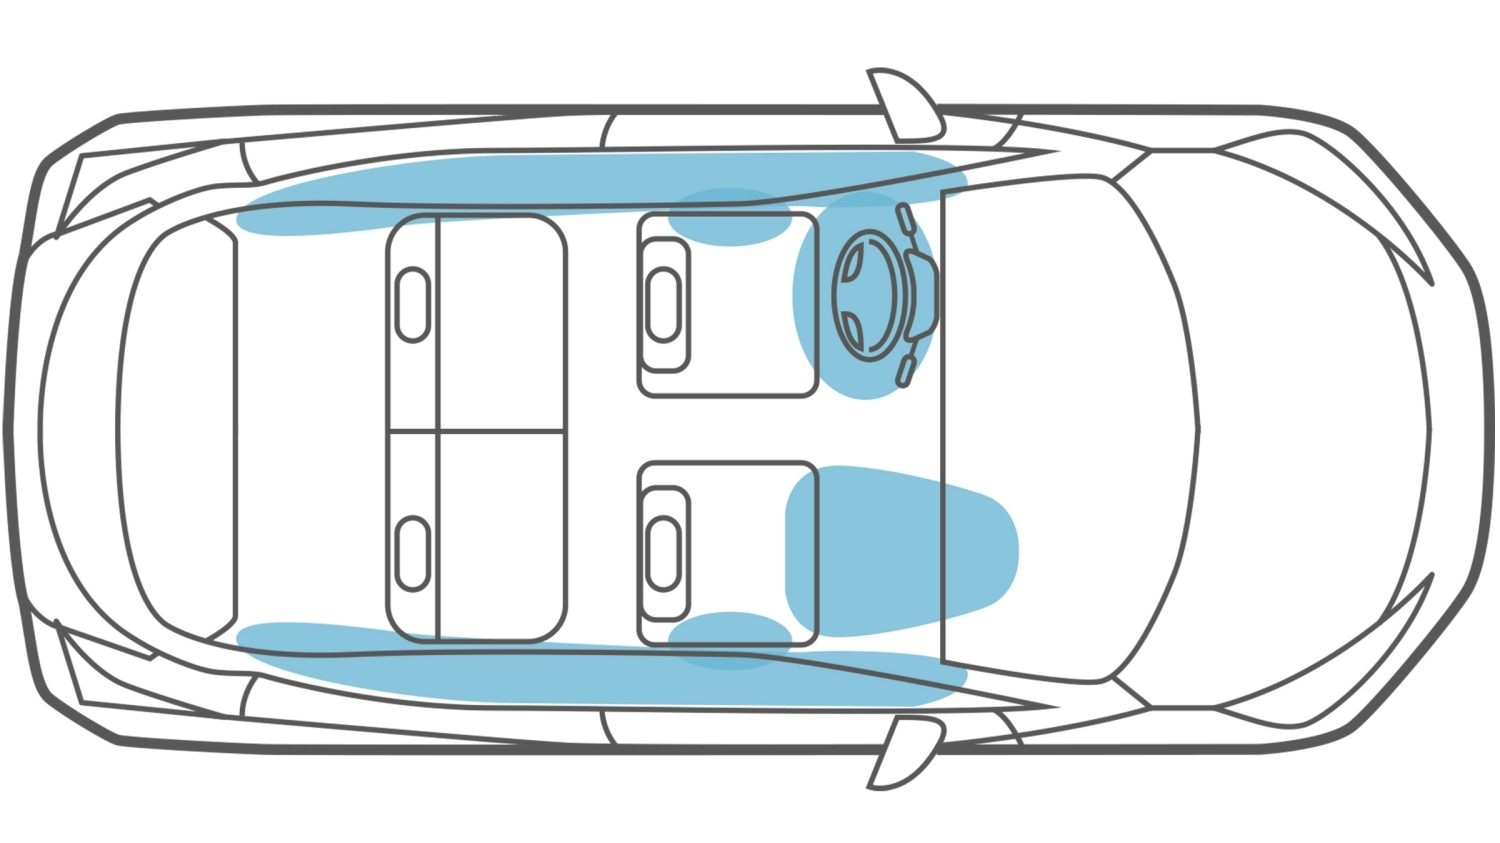 Micra Advanced Air Bag System Schema